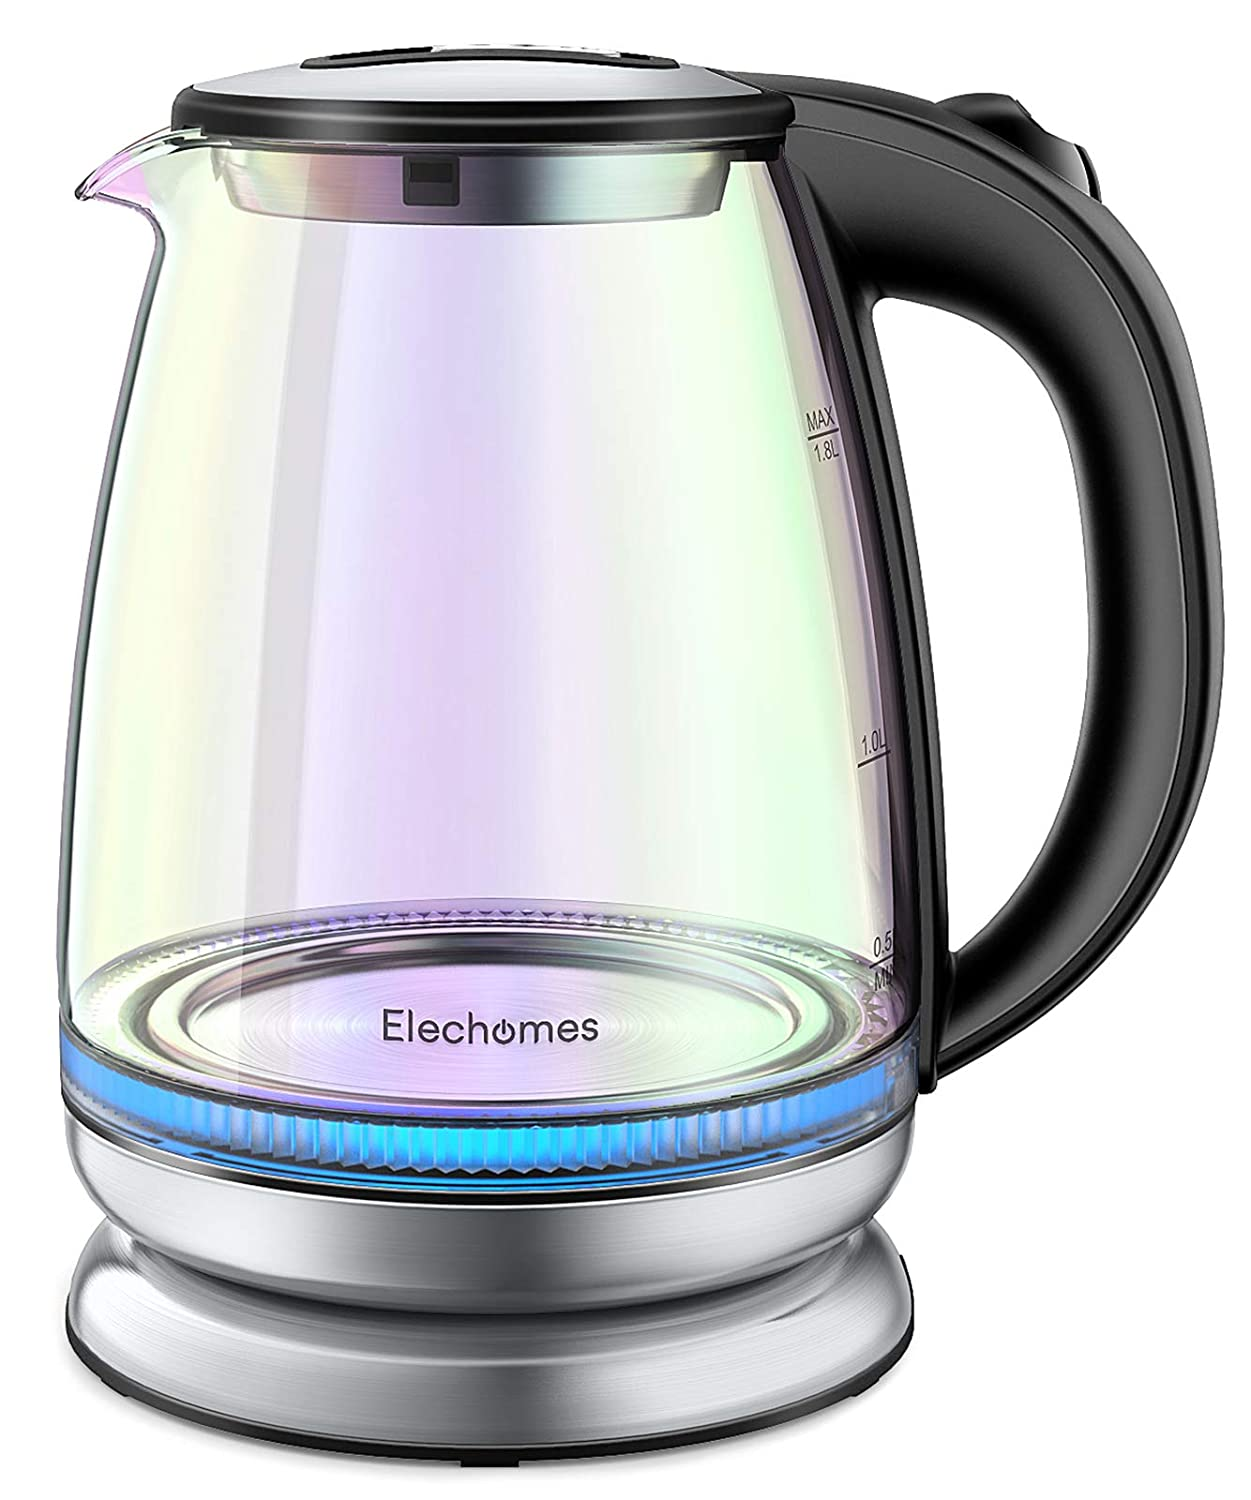 Elechomes Electric Kettle 1.8L Glass Hot Water Boiler Coffee Tea Heater BPA-Free Kettles with LED Indicator Light, Auto Shut-Off, Boil-Dry Protection, Stainless Steel Inner Lip